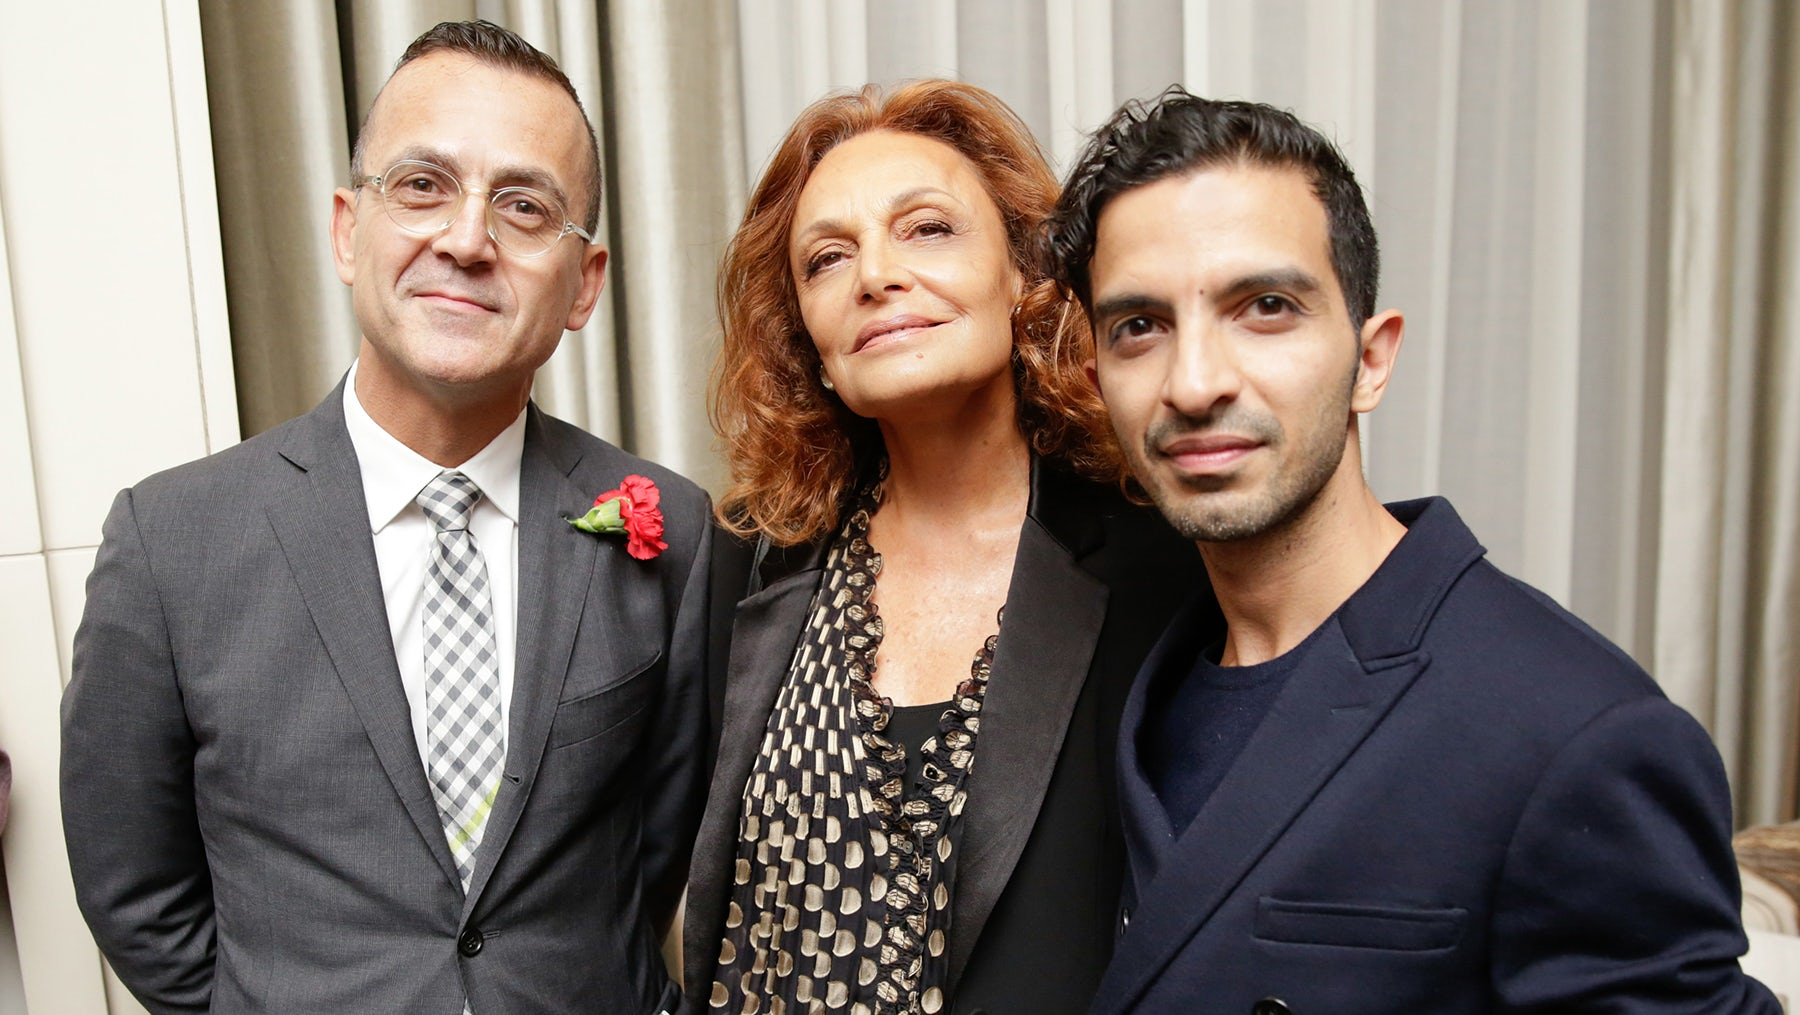 Steven Kolb, Diane von Furstenberg and Imran Amed | Photo: BFA NYC